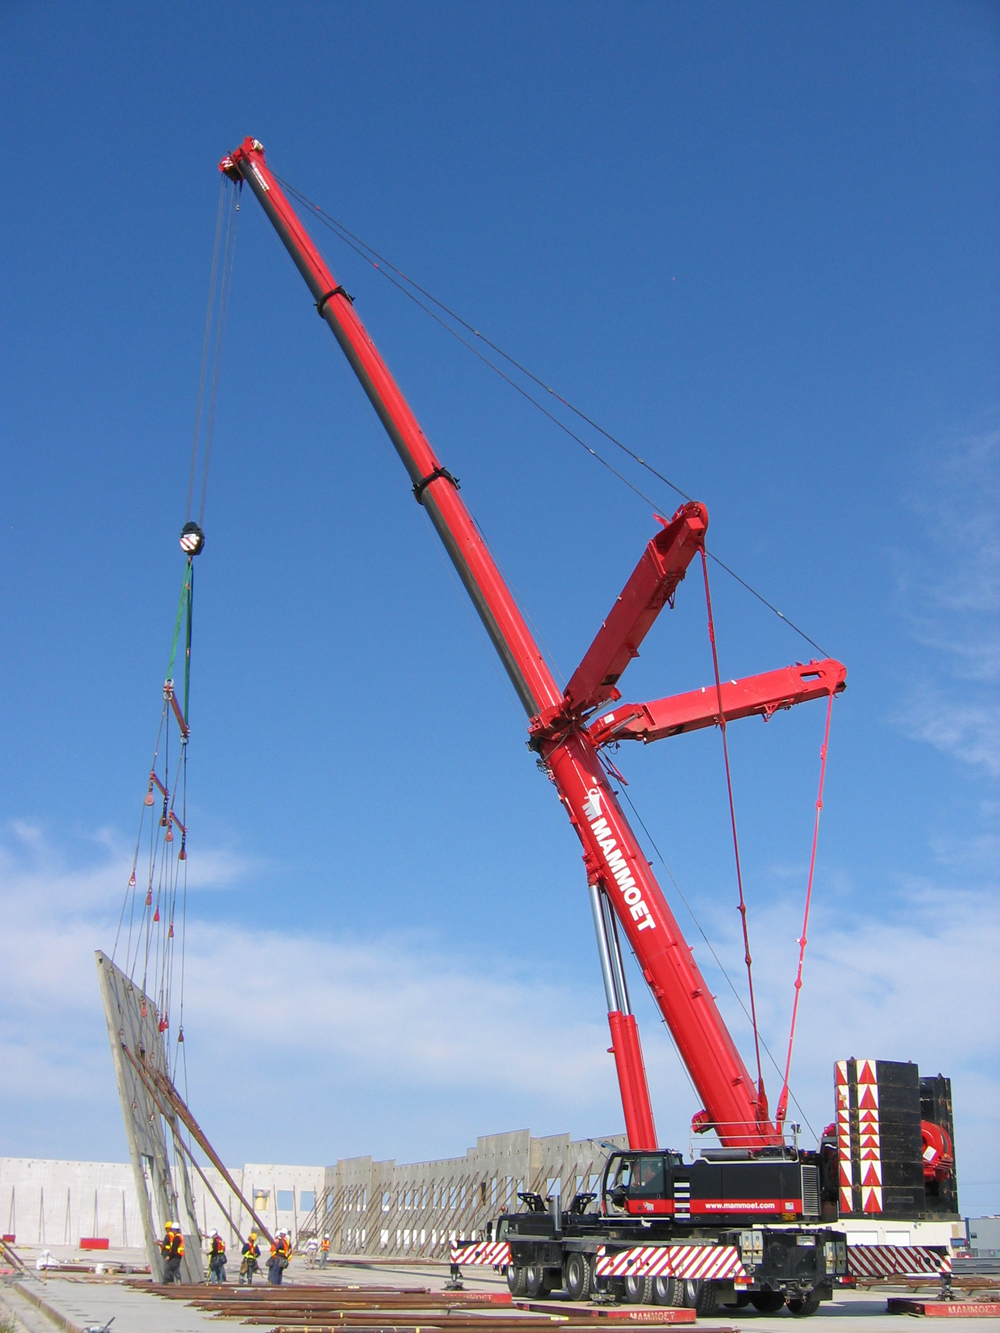 Overhead Cranes Vancouver Bc : Coolest mobile crane photo submissions all things cranes